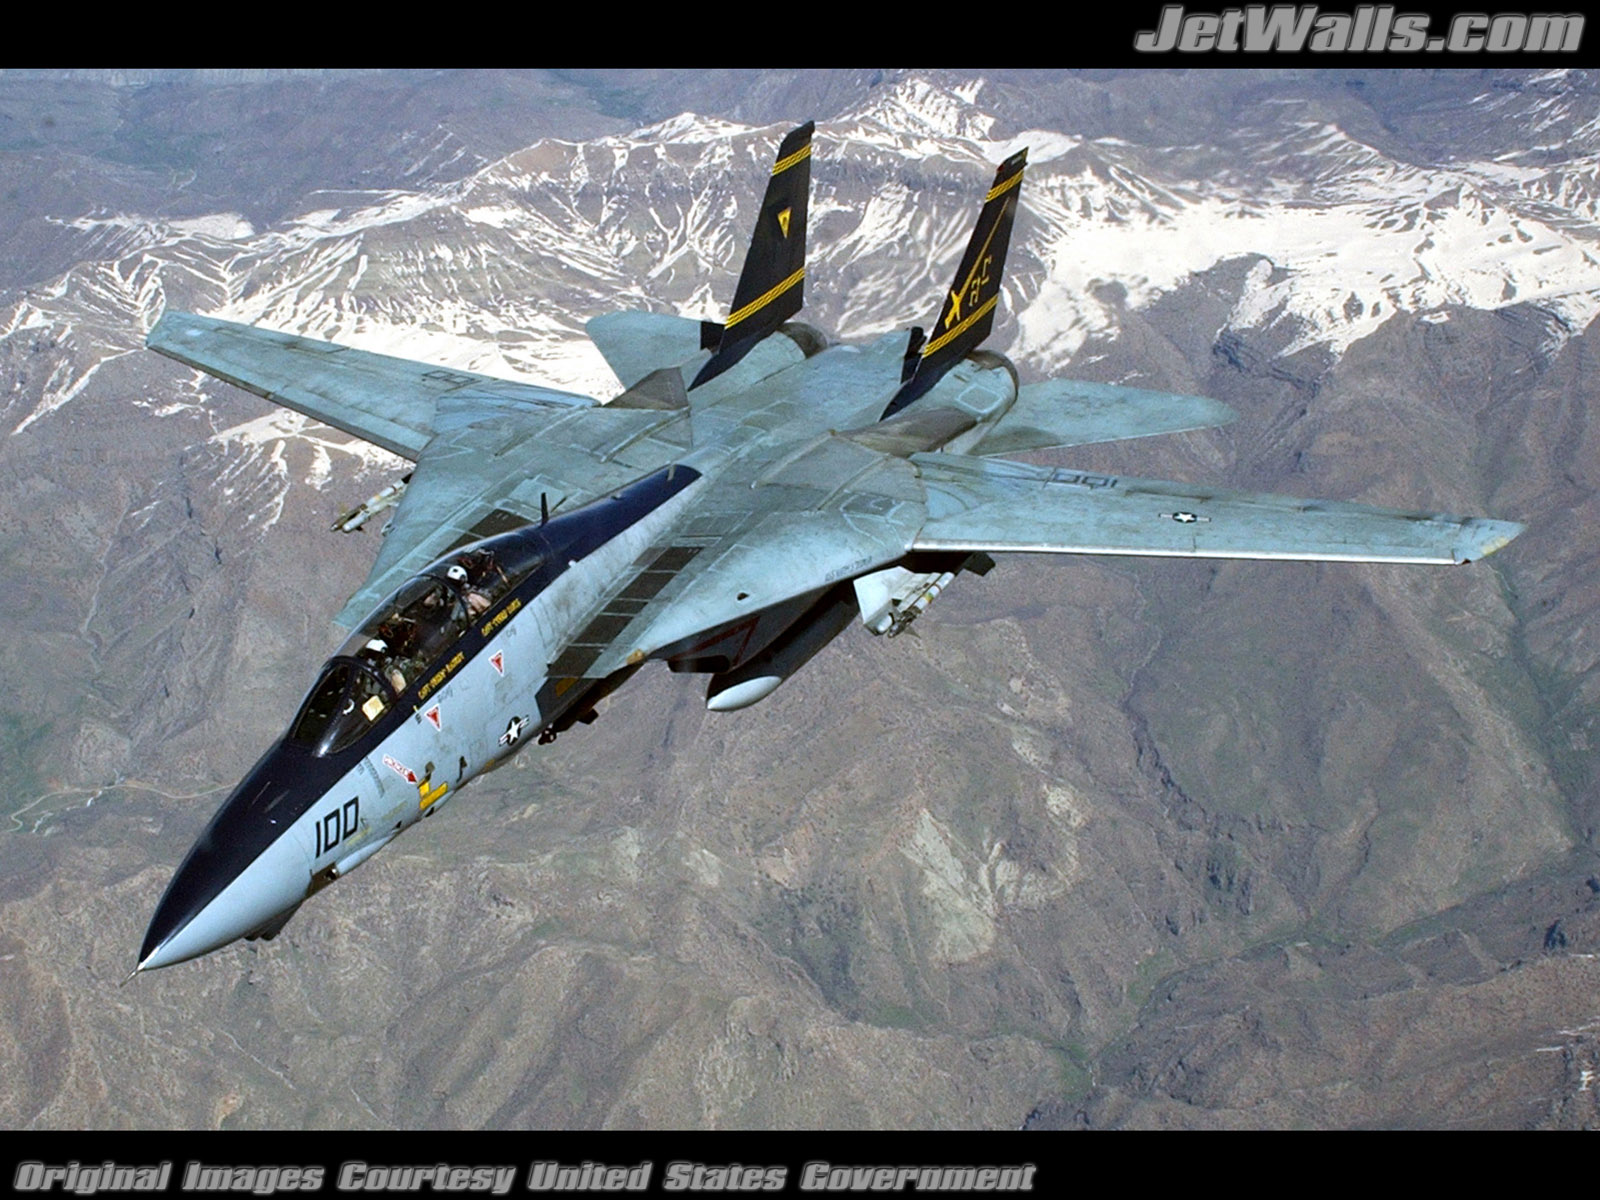 """F-14 Tomcat"" - Wallpaper No. 60 of 101. Right click for saving options."